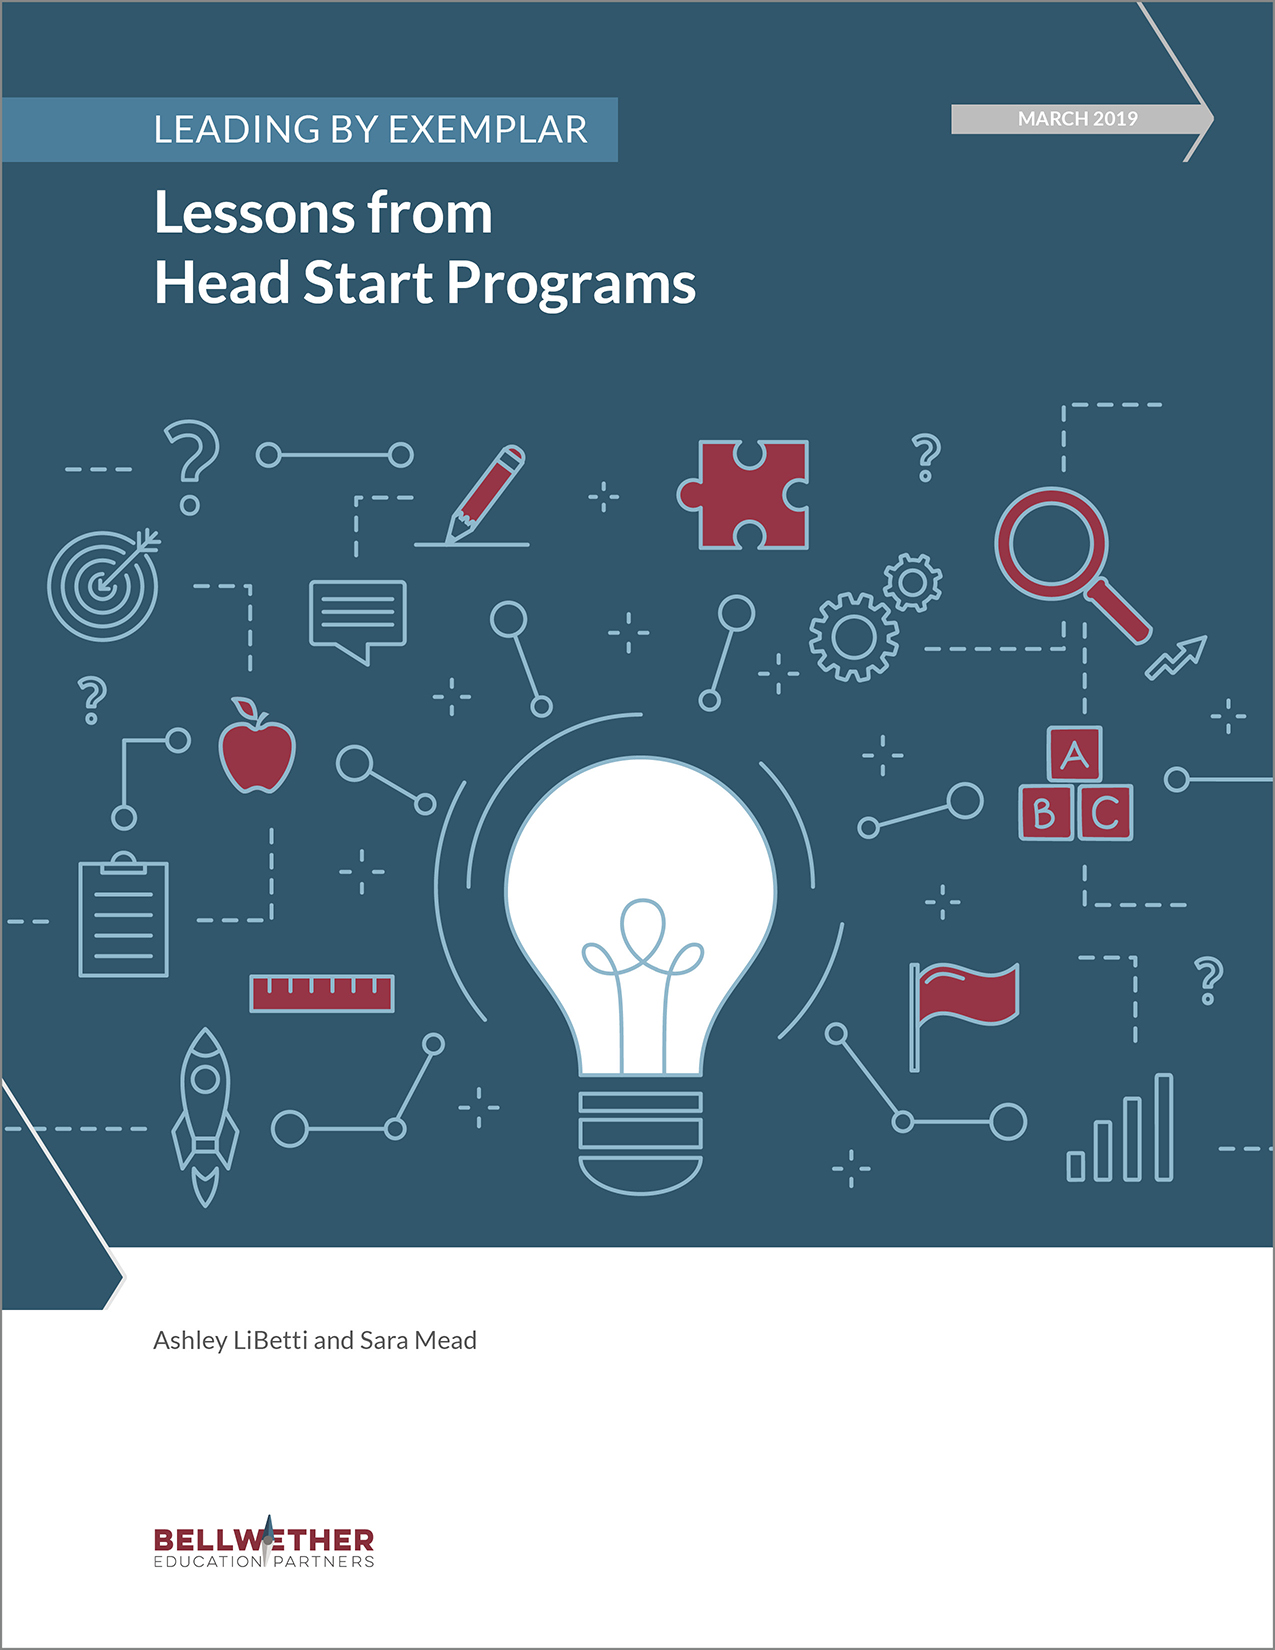 Lessons from Head Start Programs